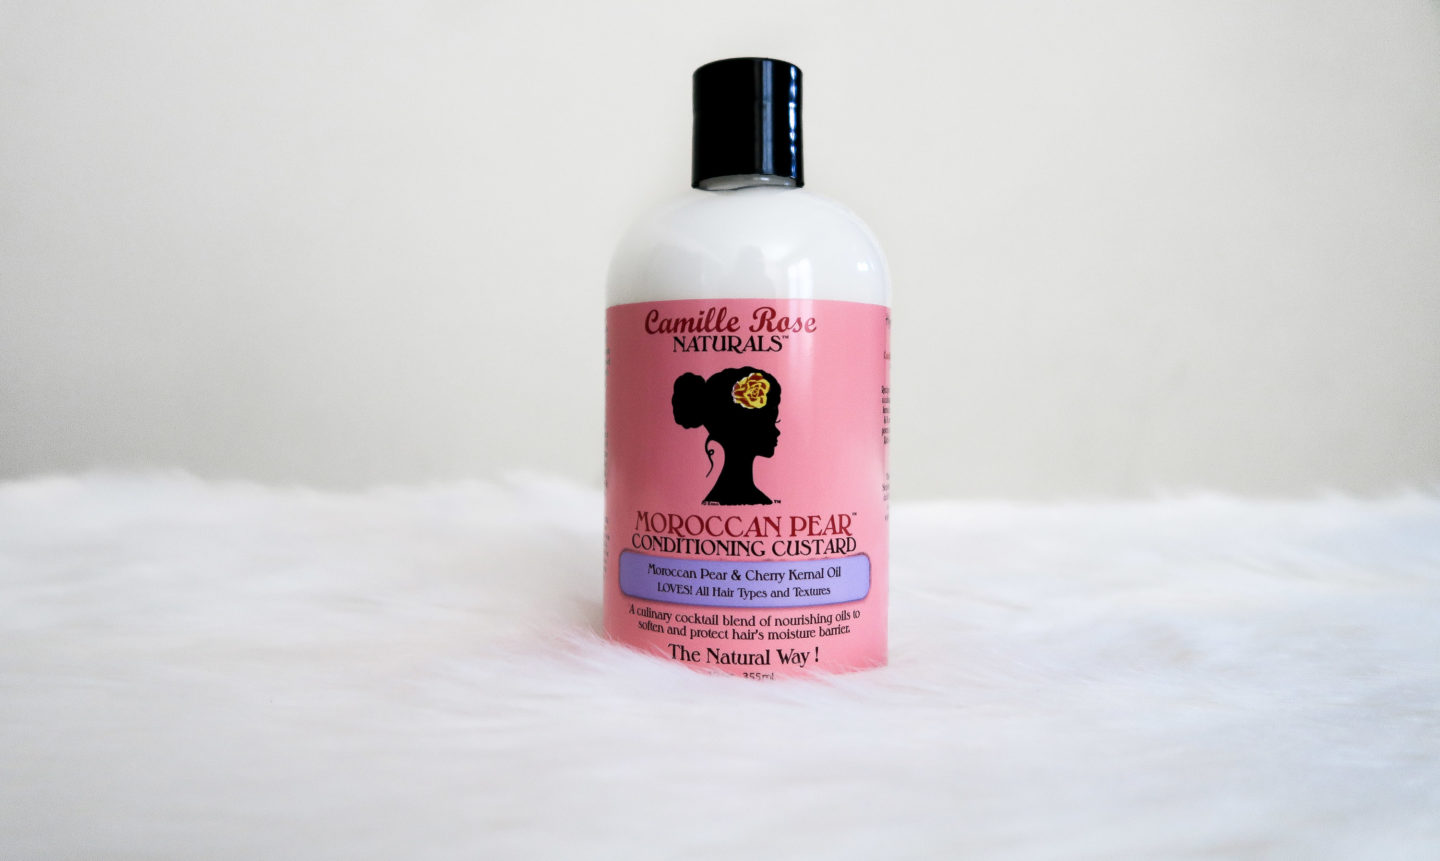 Plus Size Fashion • Hair Products for Curly & Coily Hair • Camille Rose Naturals Conditioner • Shapely Chic Sheri